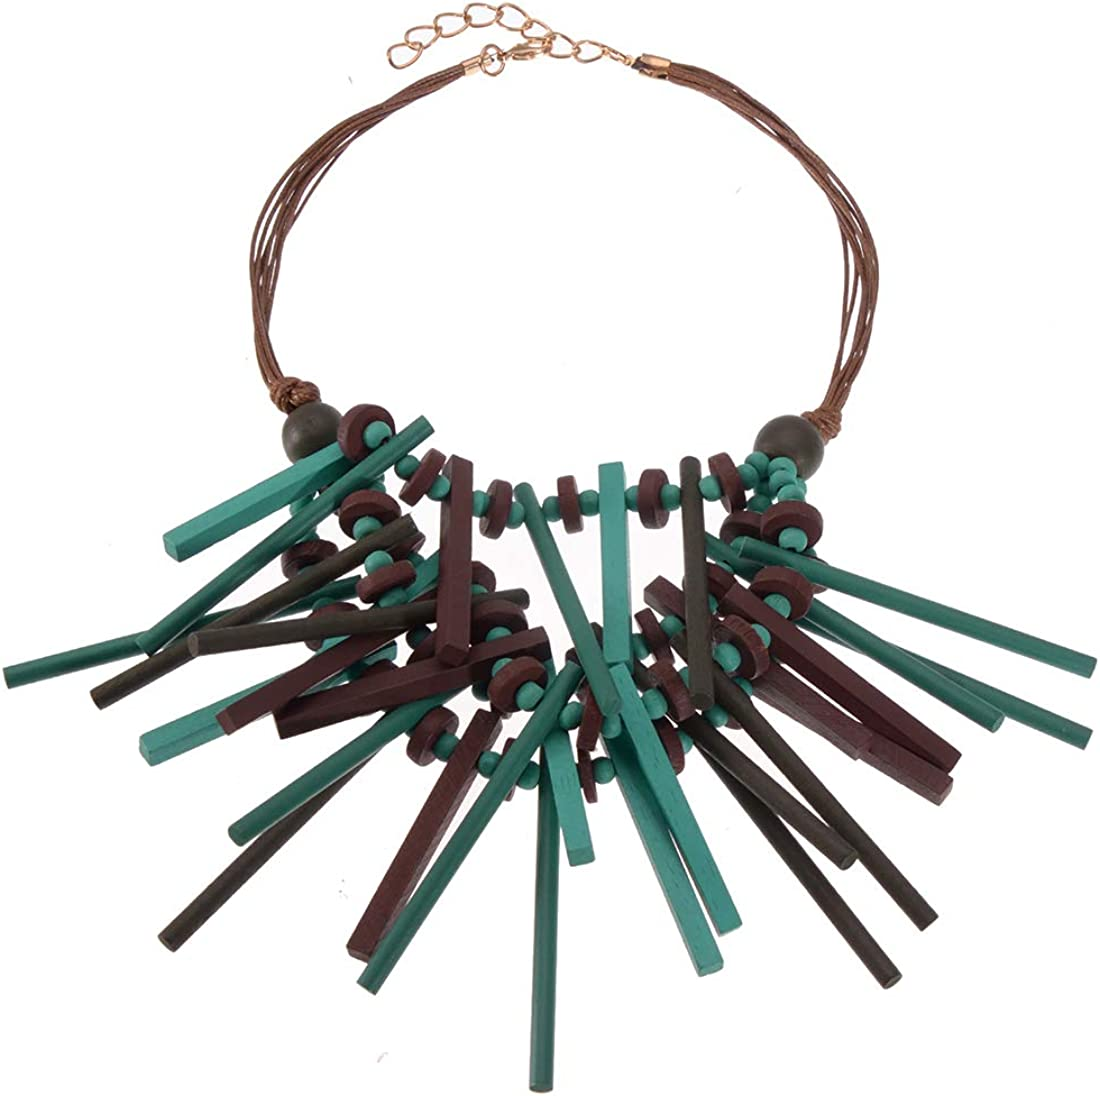 Boho Multilayer Wood Beaded Statement Necklace Chunky Collar Choker Bib Necklace for Women Novelty Jewelry Handmade (Bule Wooden Necklace)